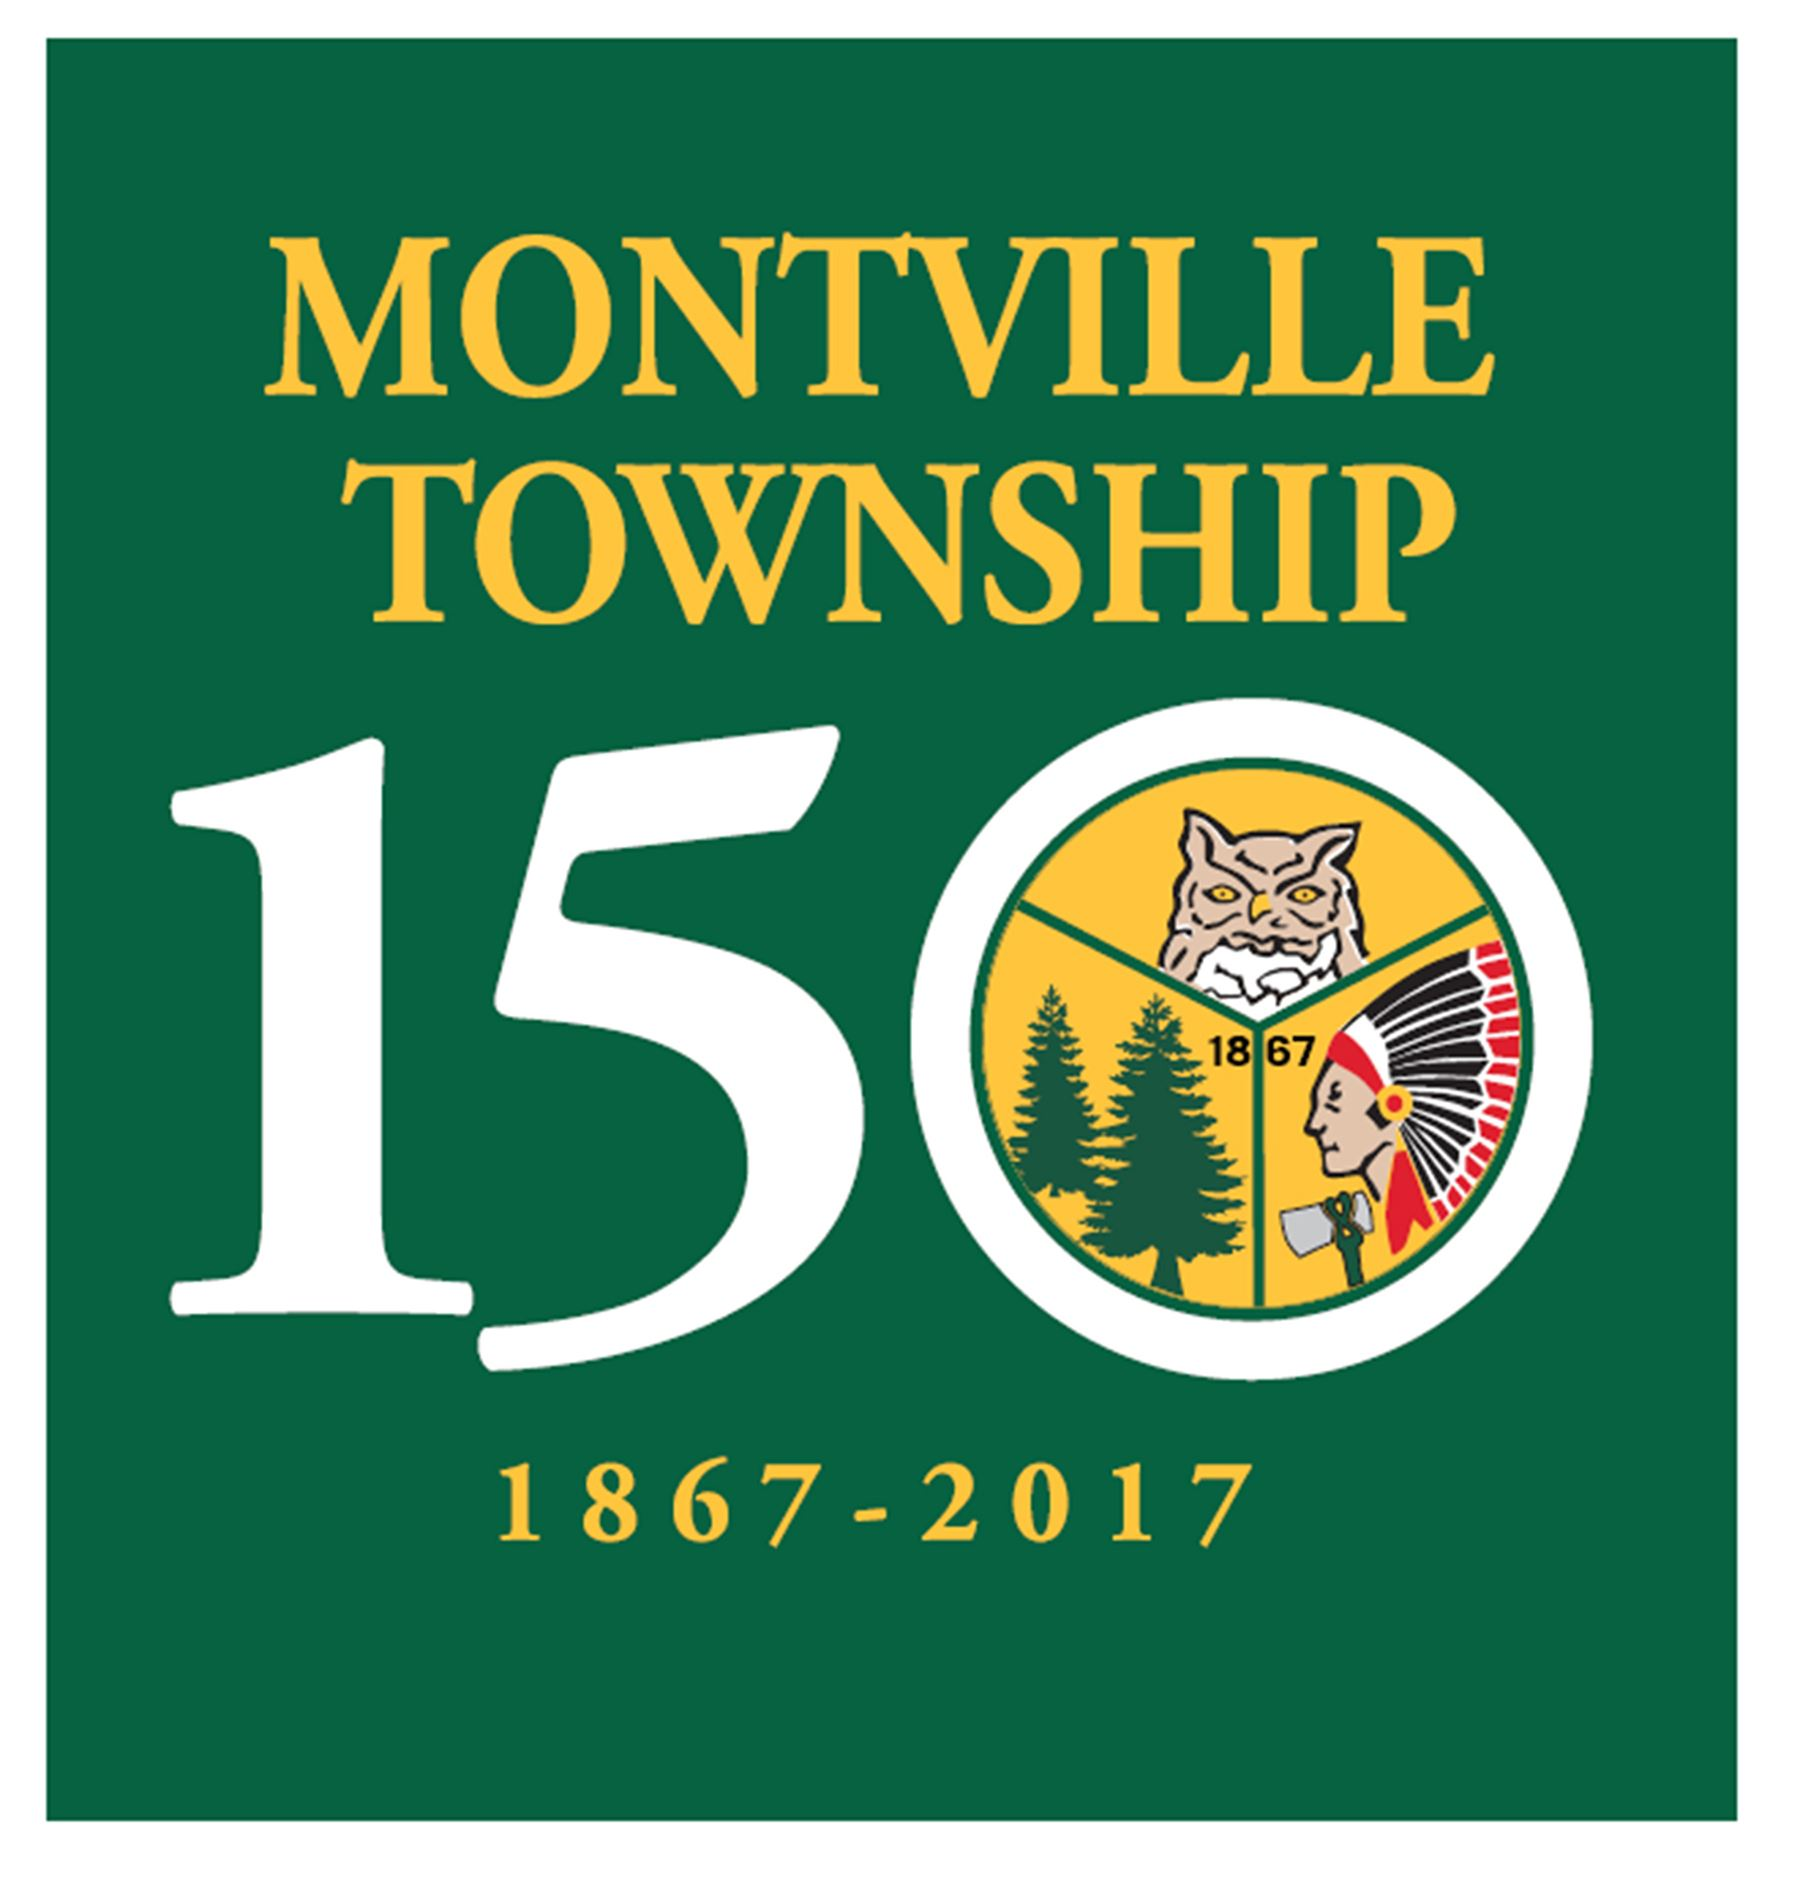 township meetings Cable channels the following local cable channels also broadcast information relating to wrightstown township: 22: broadcasts wrightstown township meetings, both live and in repeat.